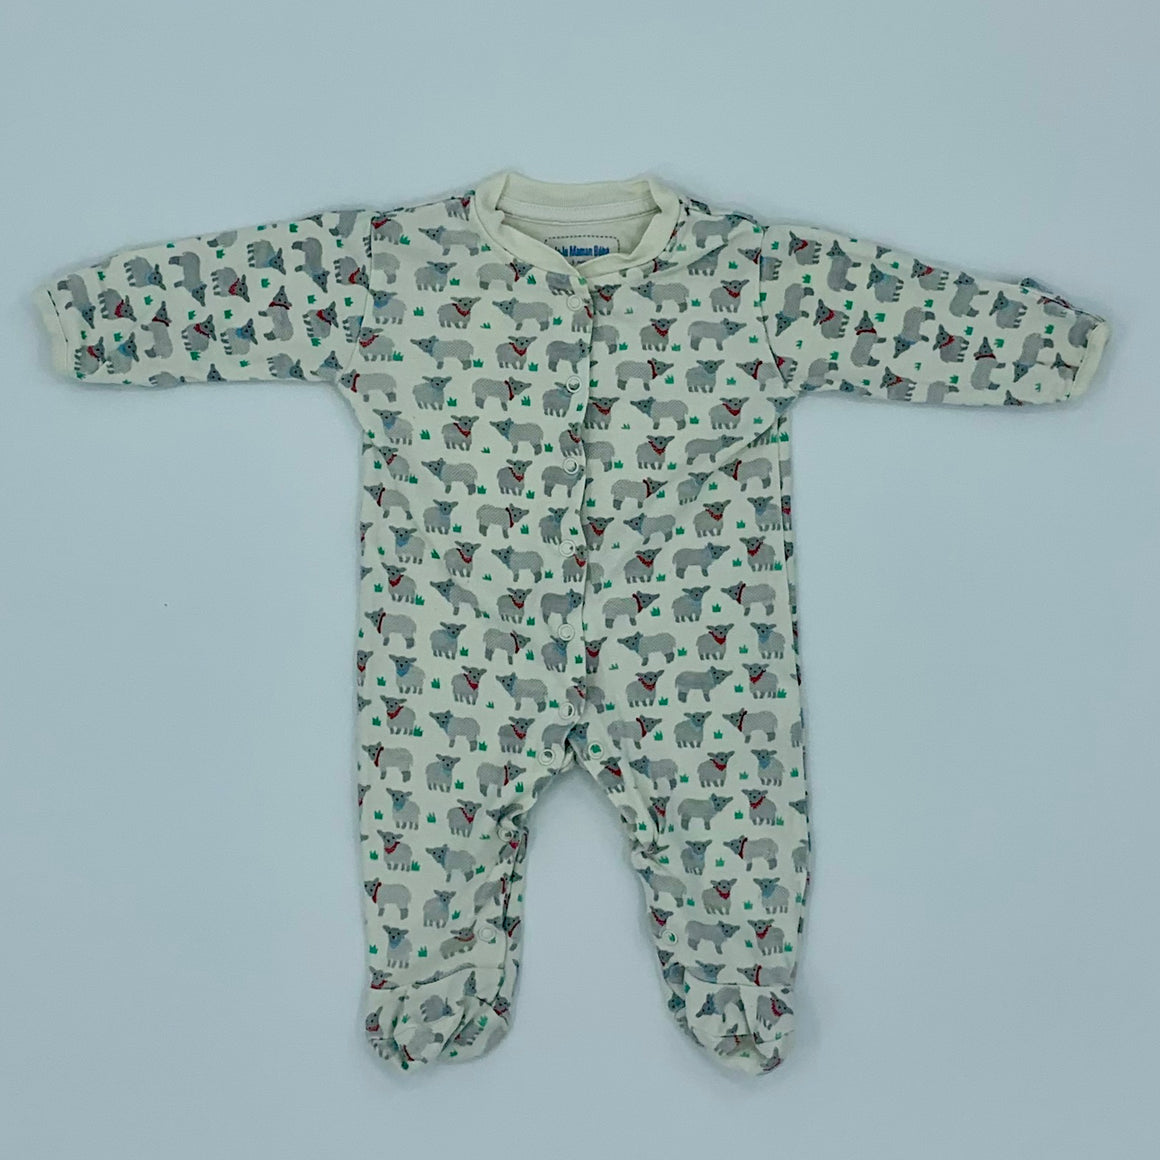 Gently Worn Jojo Maman Bebe white sheep sleepsuit size 0-3 months